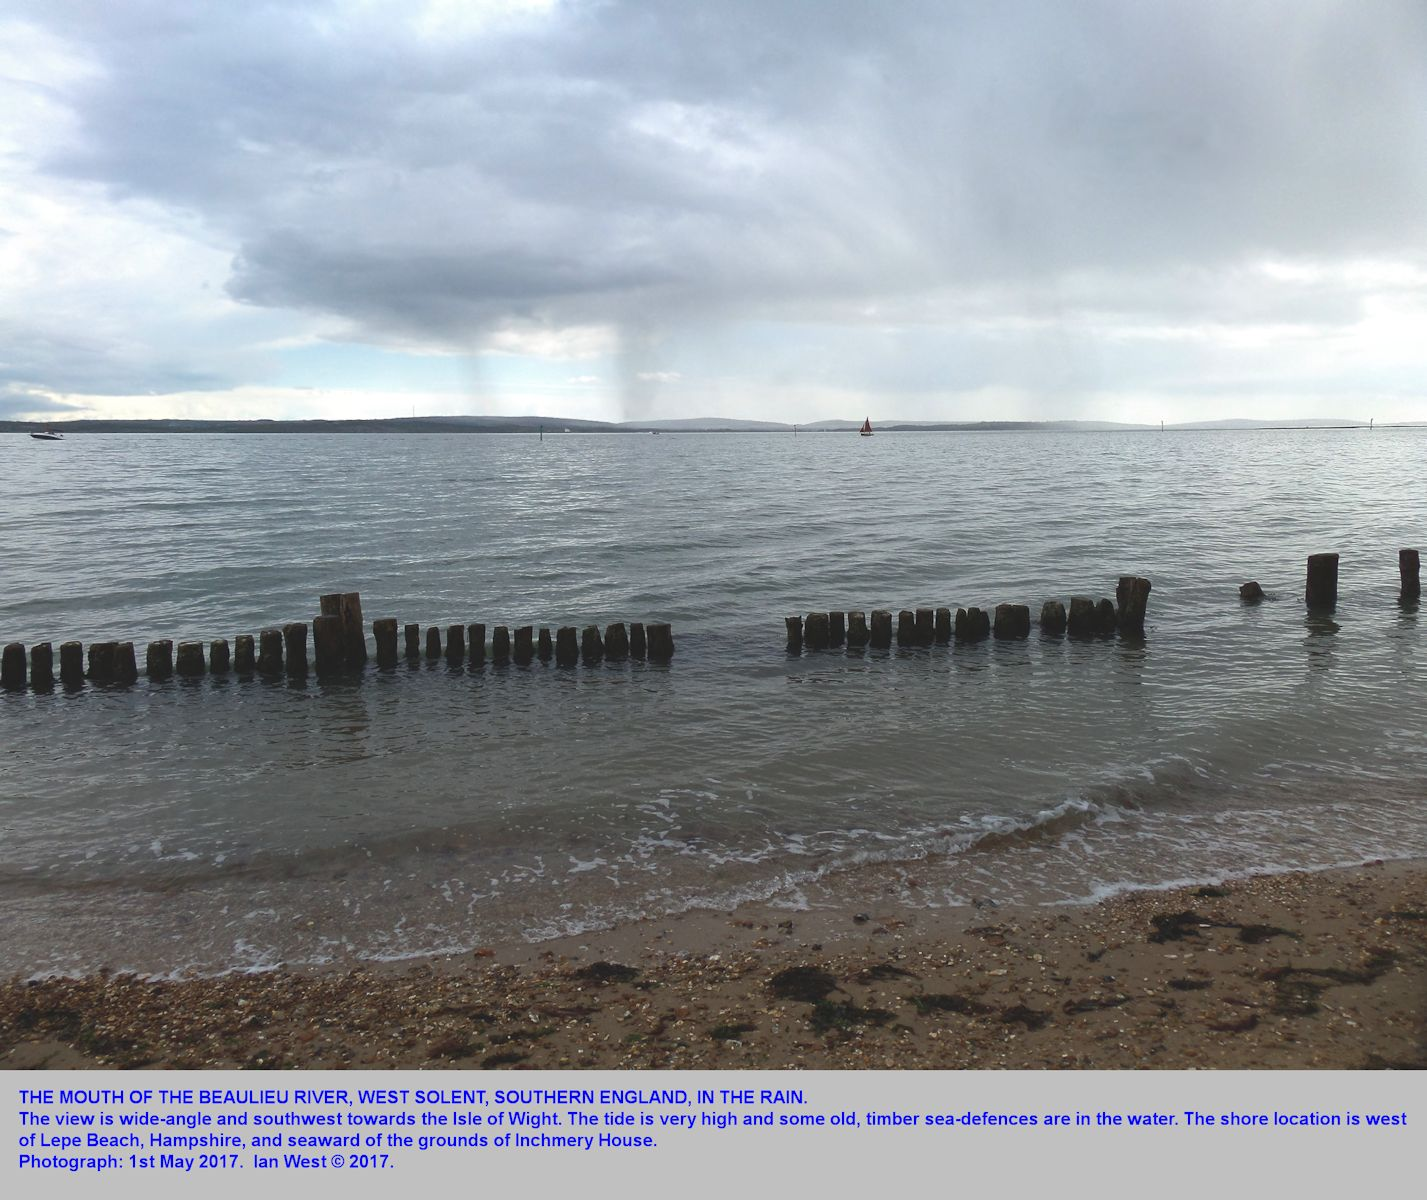 View of the mouth of the Beaulieu River and the West Solent, seen from the west of Lepe Beach, Hampshire, during rain showers, 1st May 2017